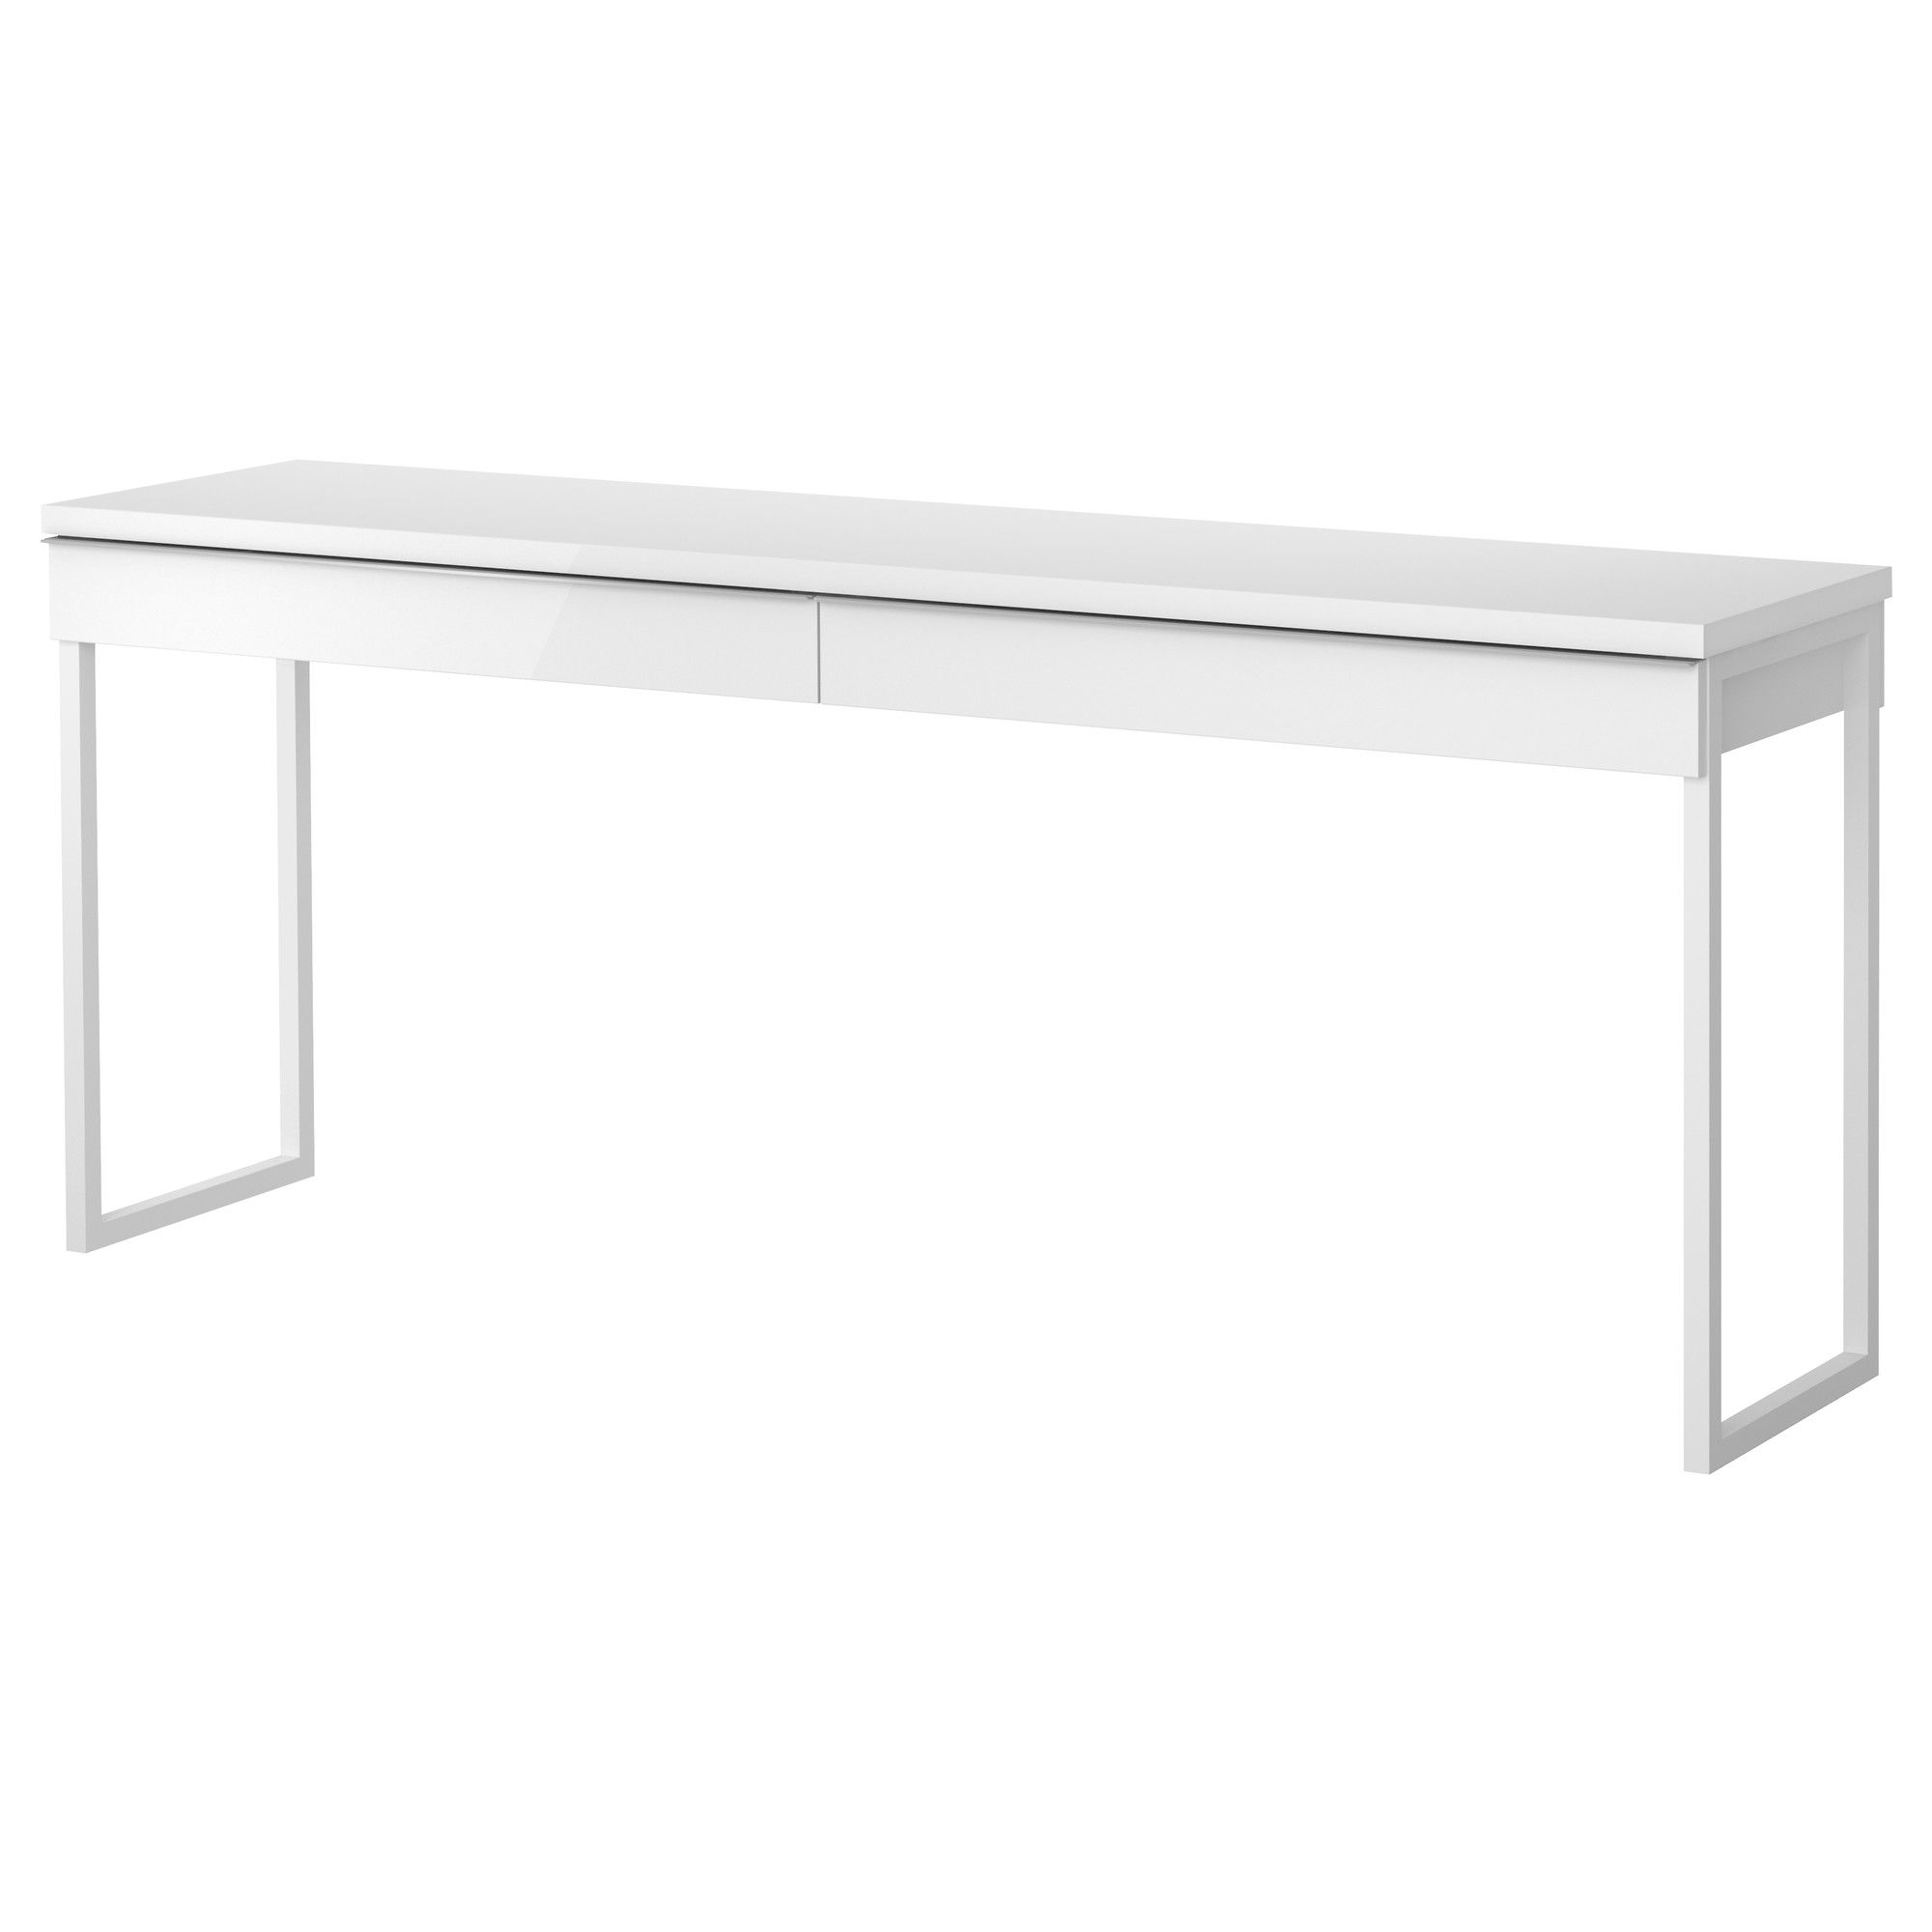 ikea white office furniture. IKEA - BESTÅ BURS, Desk, , Two People Can Work Comfortably At The Desk With This Long Table Top.The High-gloss Surfaces Reflect Light And Give A Vibrant Ikea White Office Furniture W